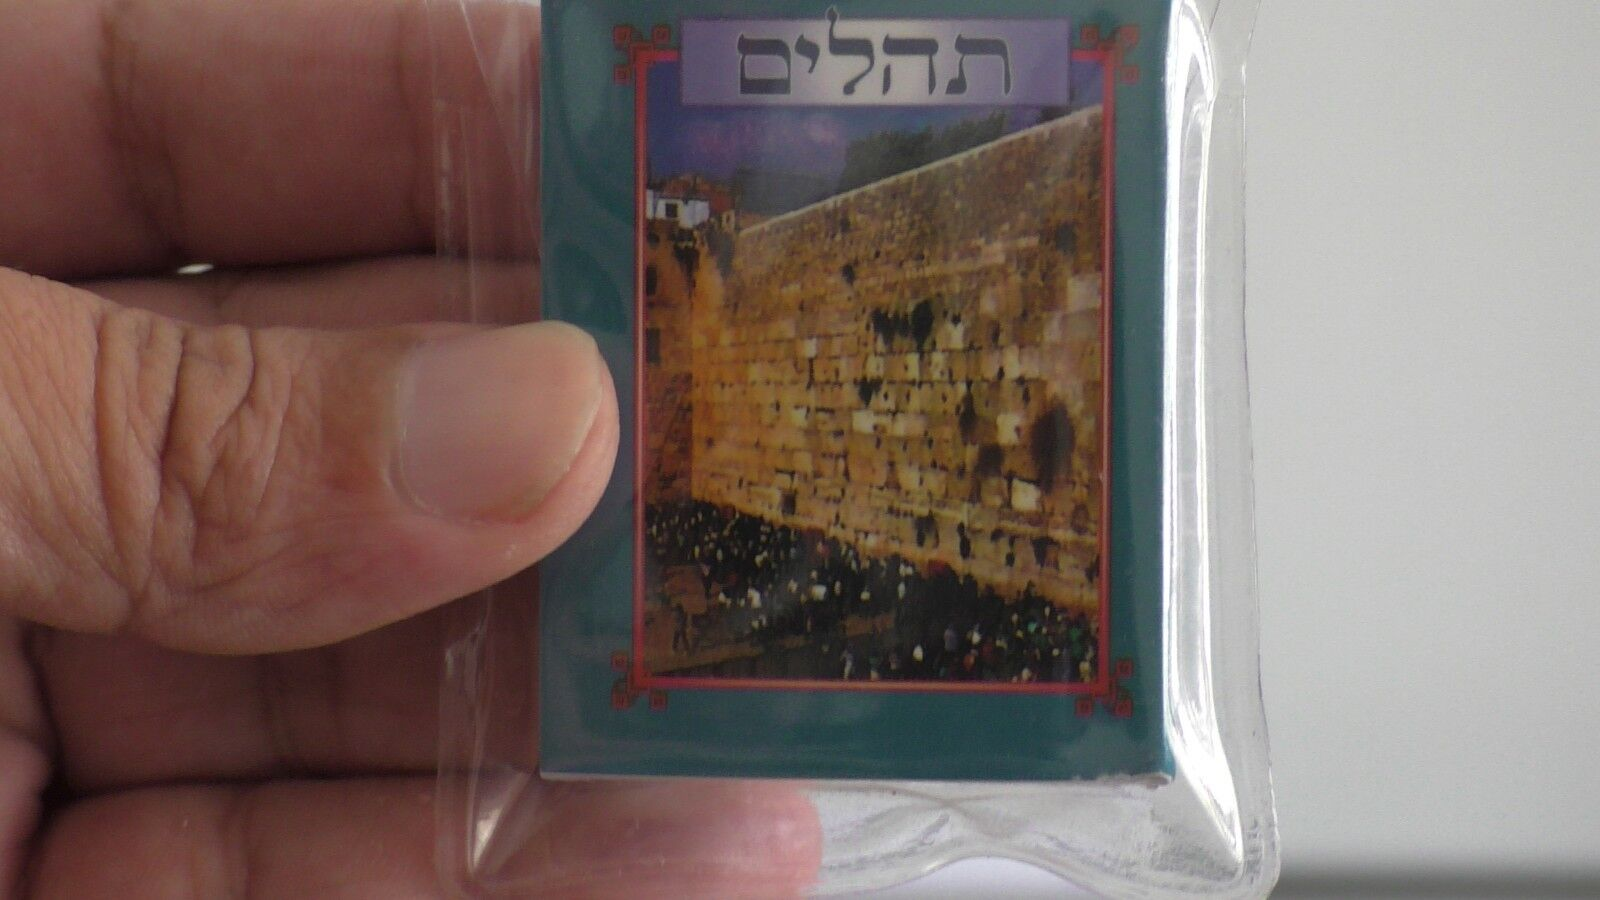 2.5 (אינץ?) BOOK of PSALMS Jewish Hebrew Tehilim Bible Songs Judaica Charm+Gift 4 u (משלוח חינם בישראל)